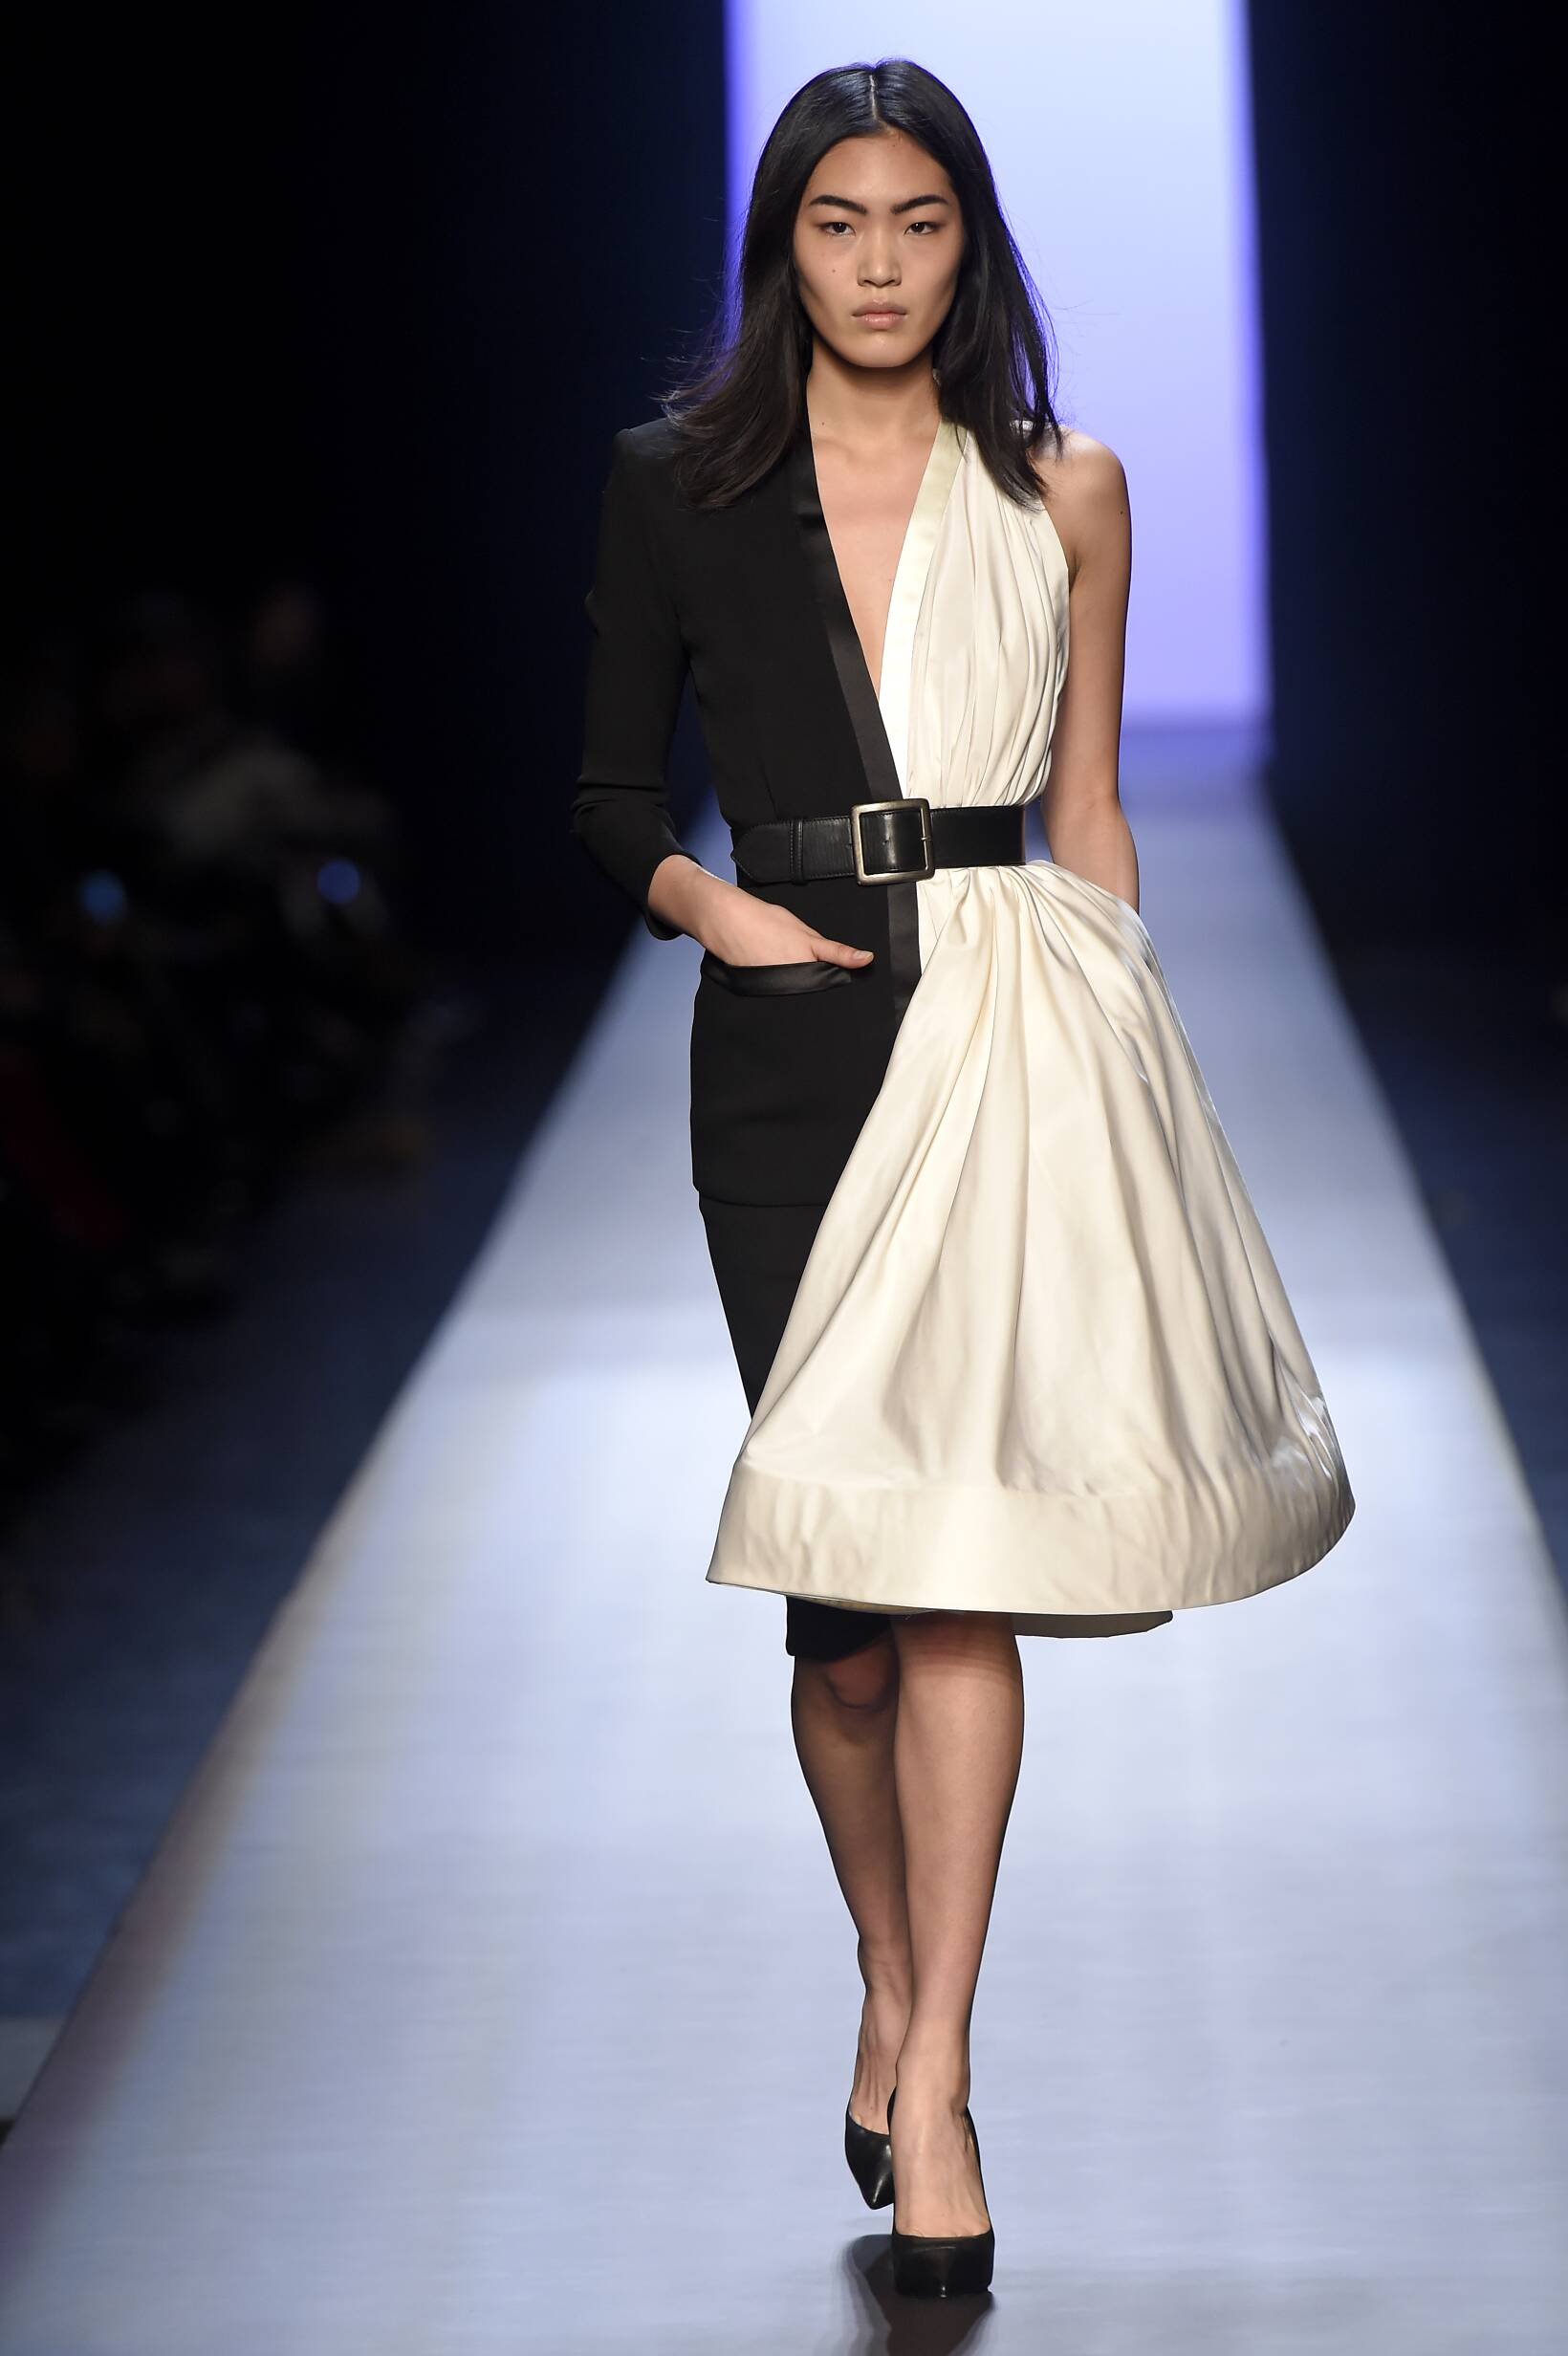 Jean Paul Gaultier Haute Couture Women's Collection 2015